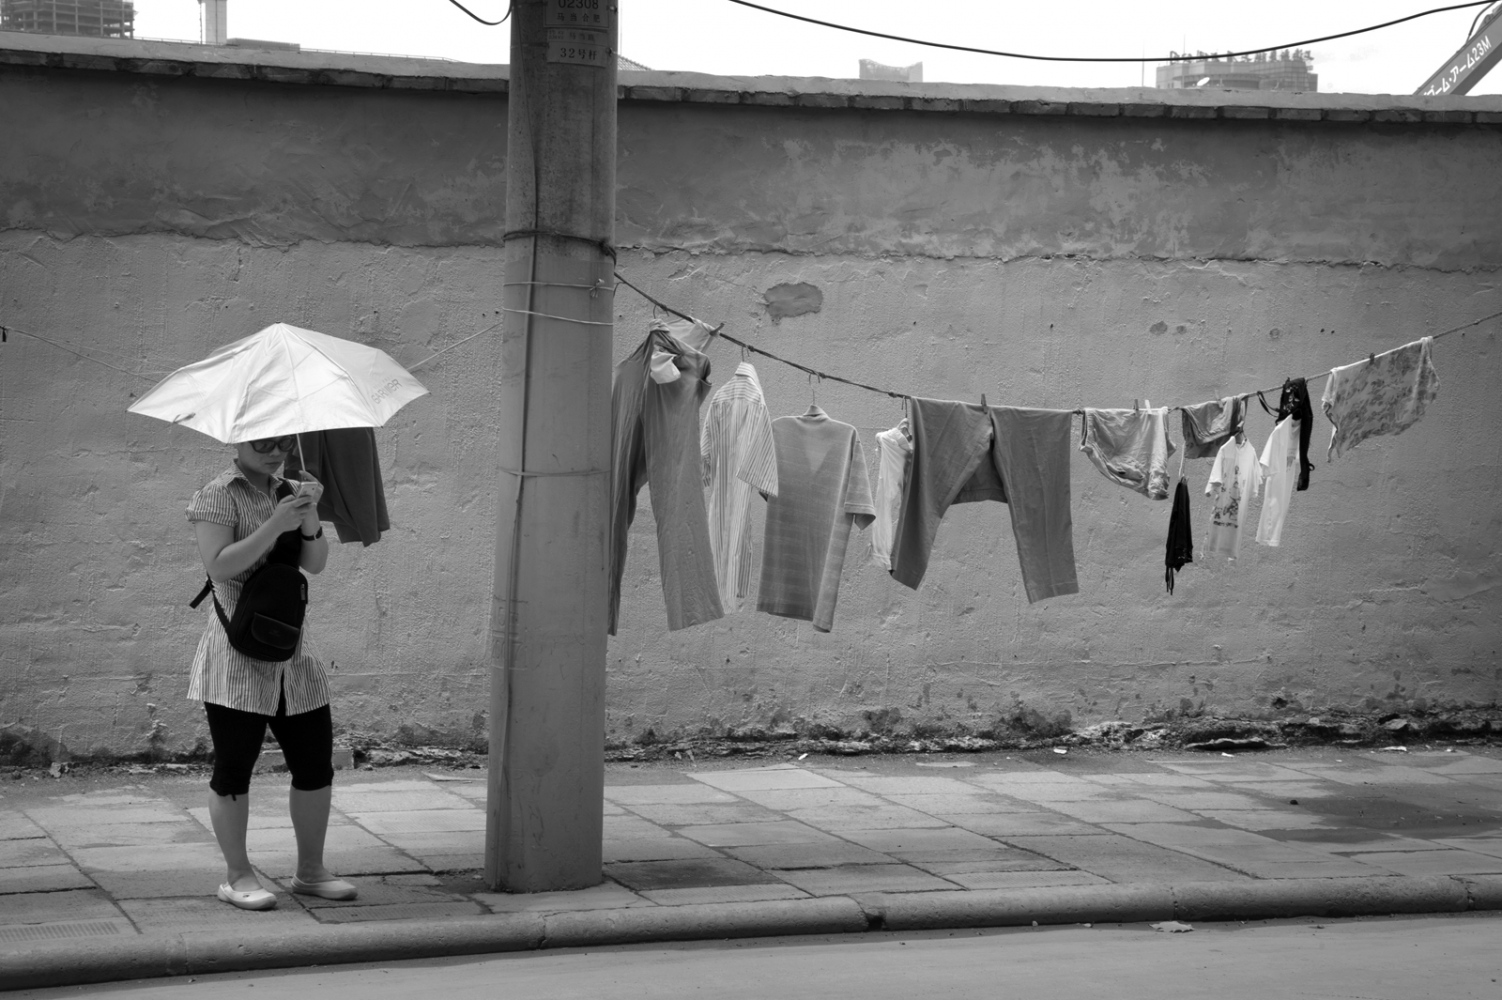 Hang clothes on the street is another symbol of identity of Shanghai. And using umbrellas to sun protect.